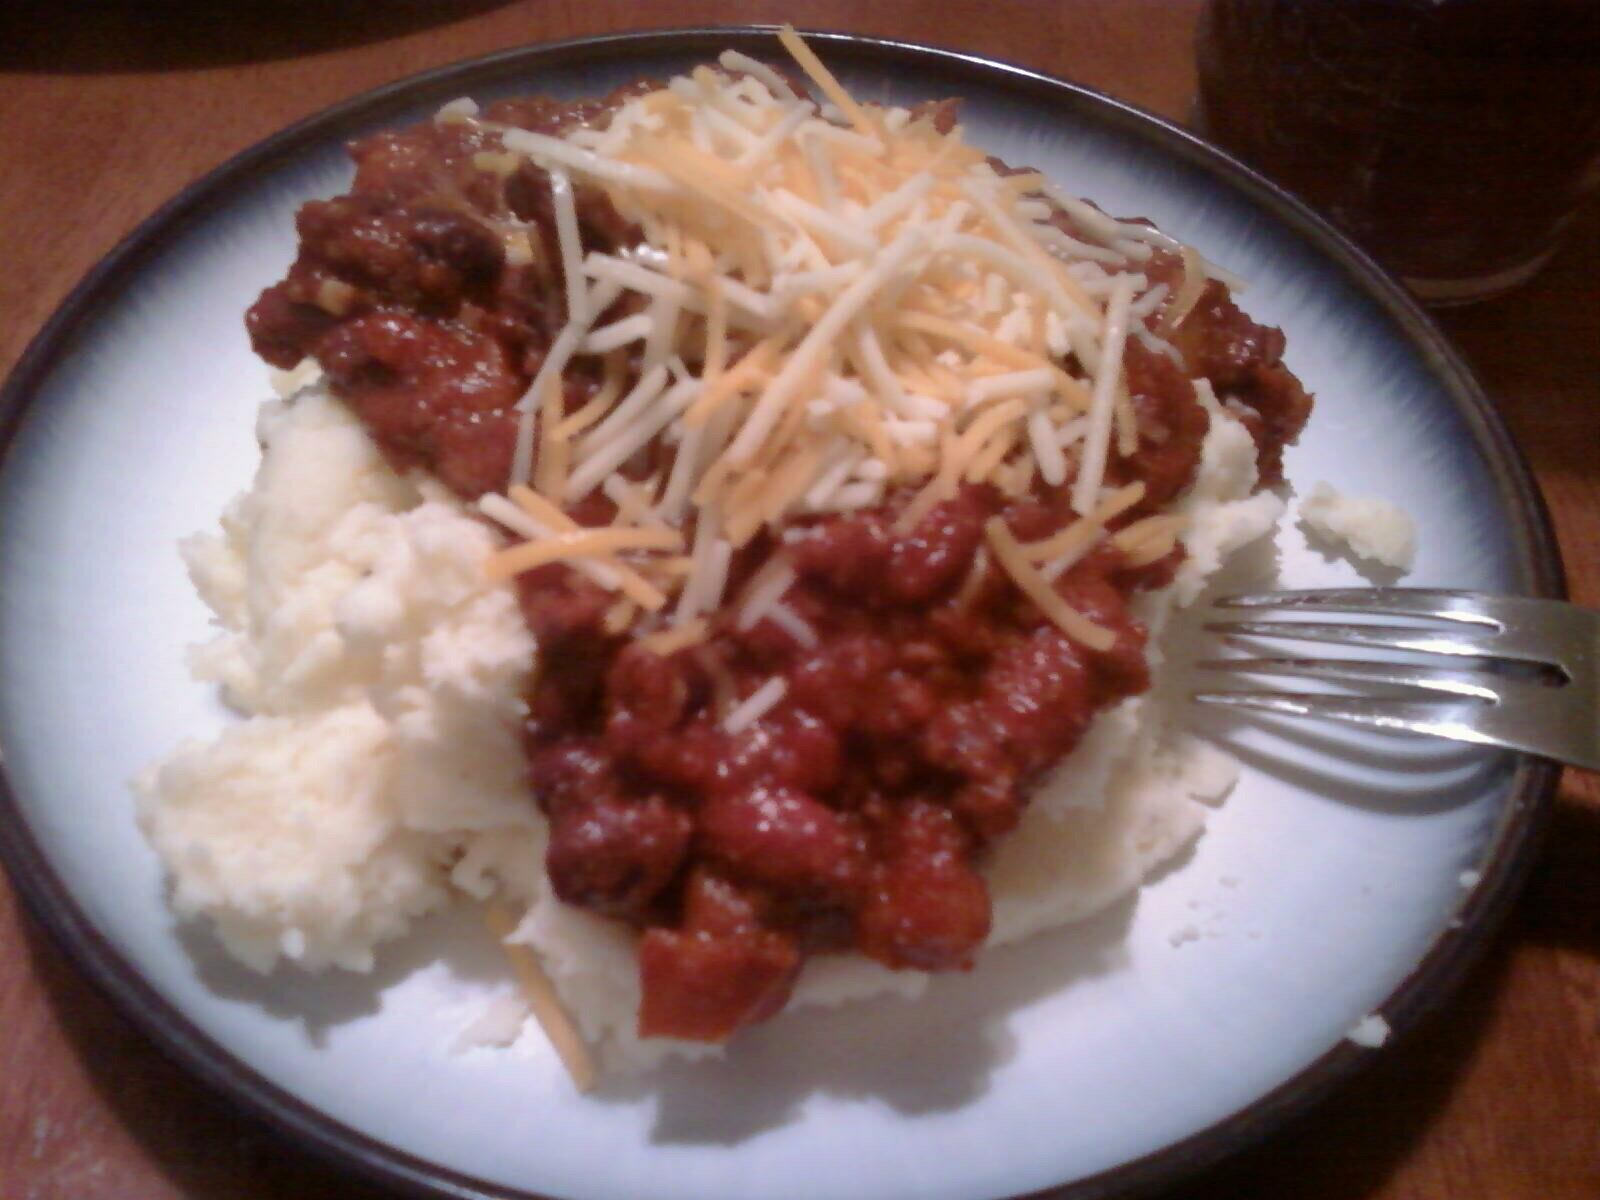 Chili à la AiXeLsyD over mashed potatoes... topped with shredded triple cheddar.